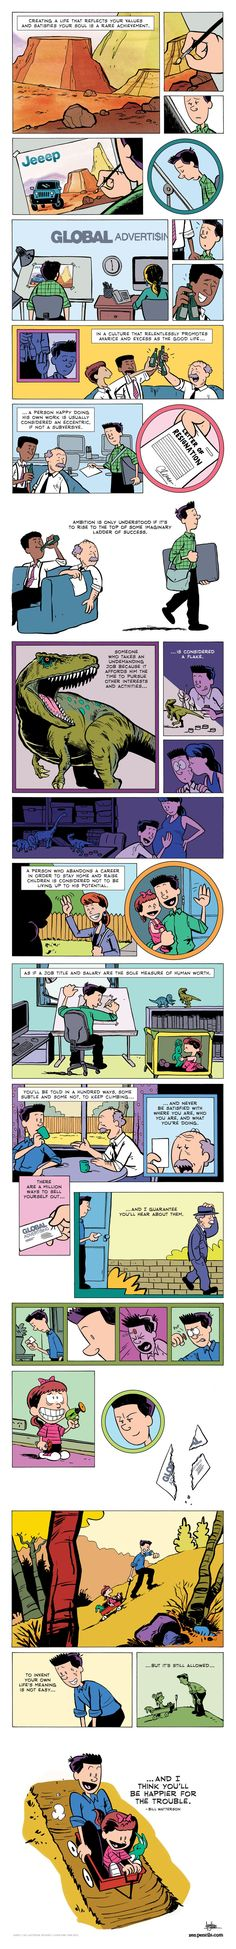 word of wisdom, cartoon quotes, life lessons, bill watterson, meaning of life